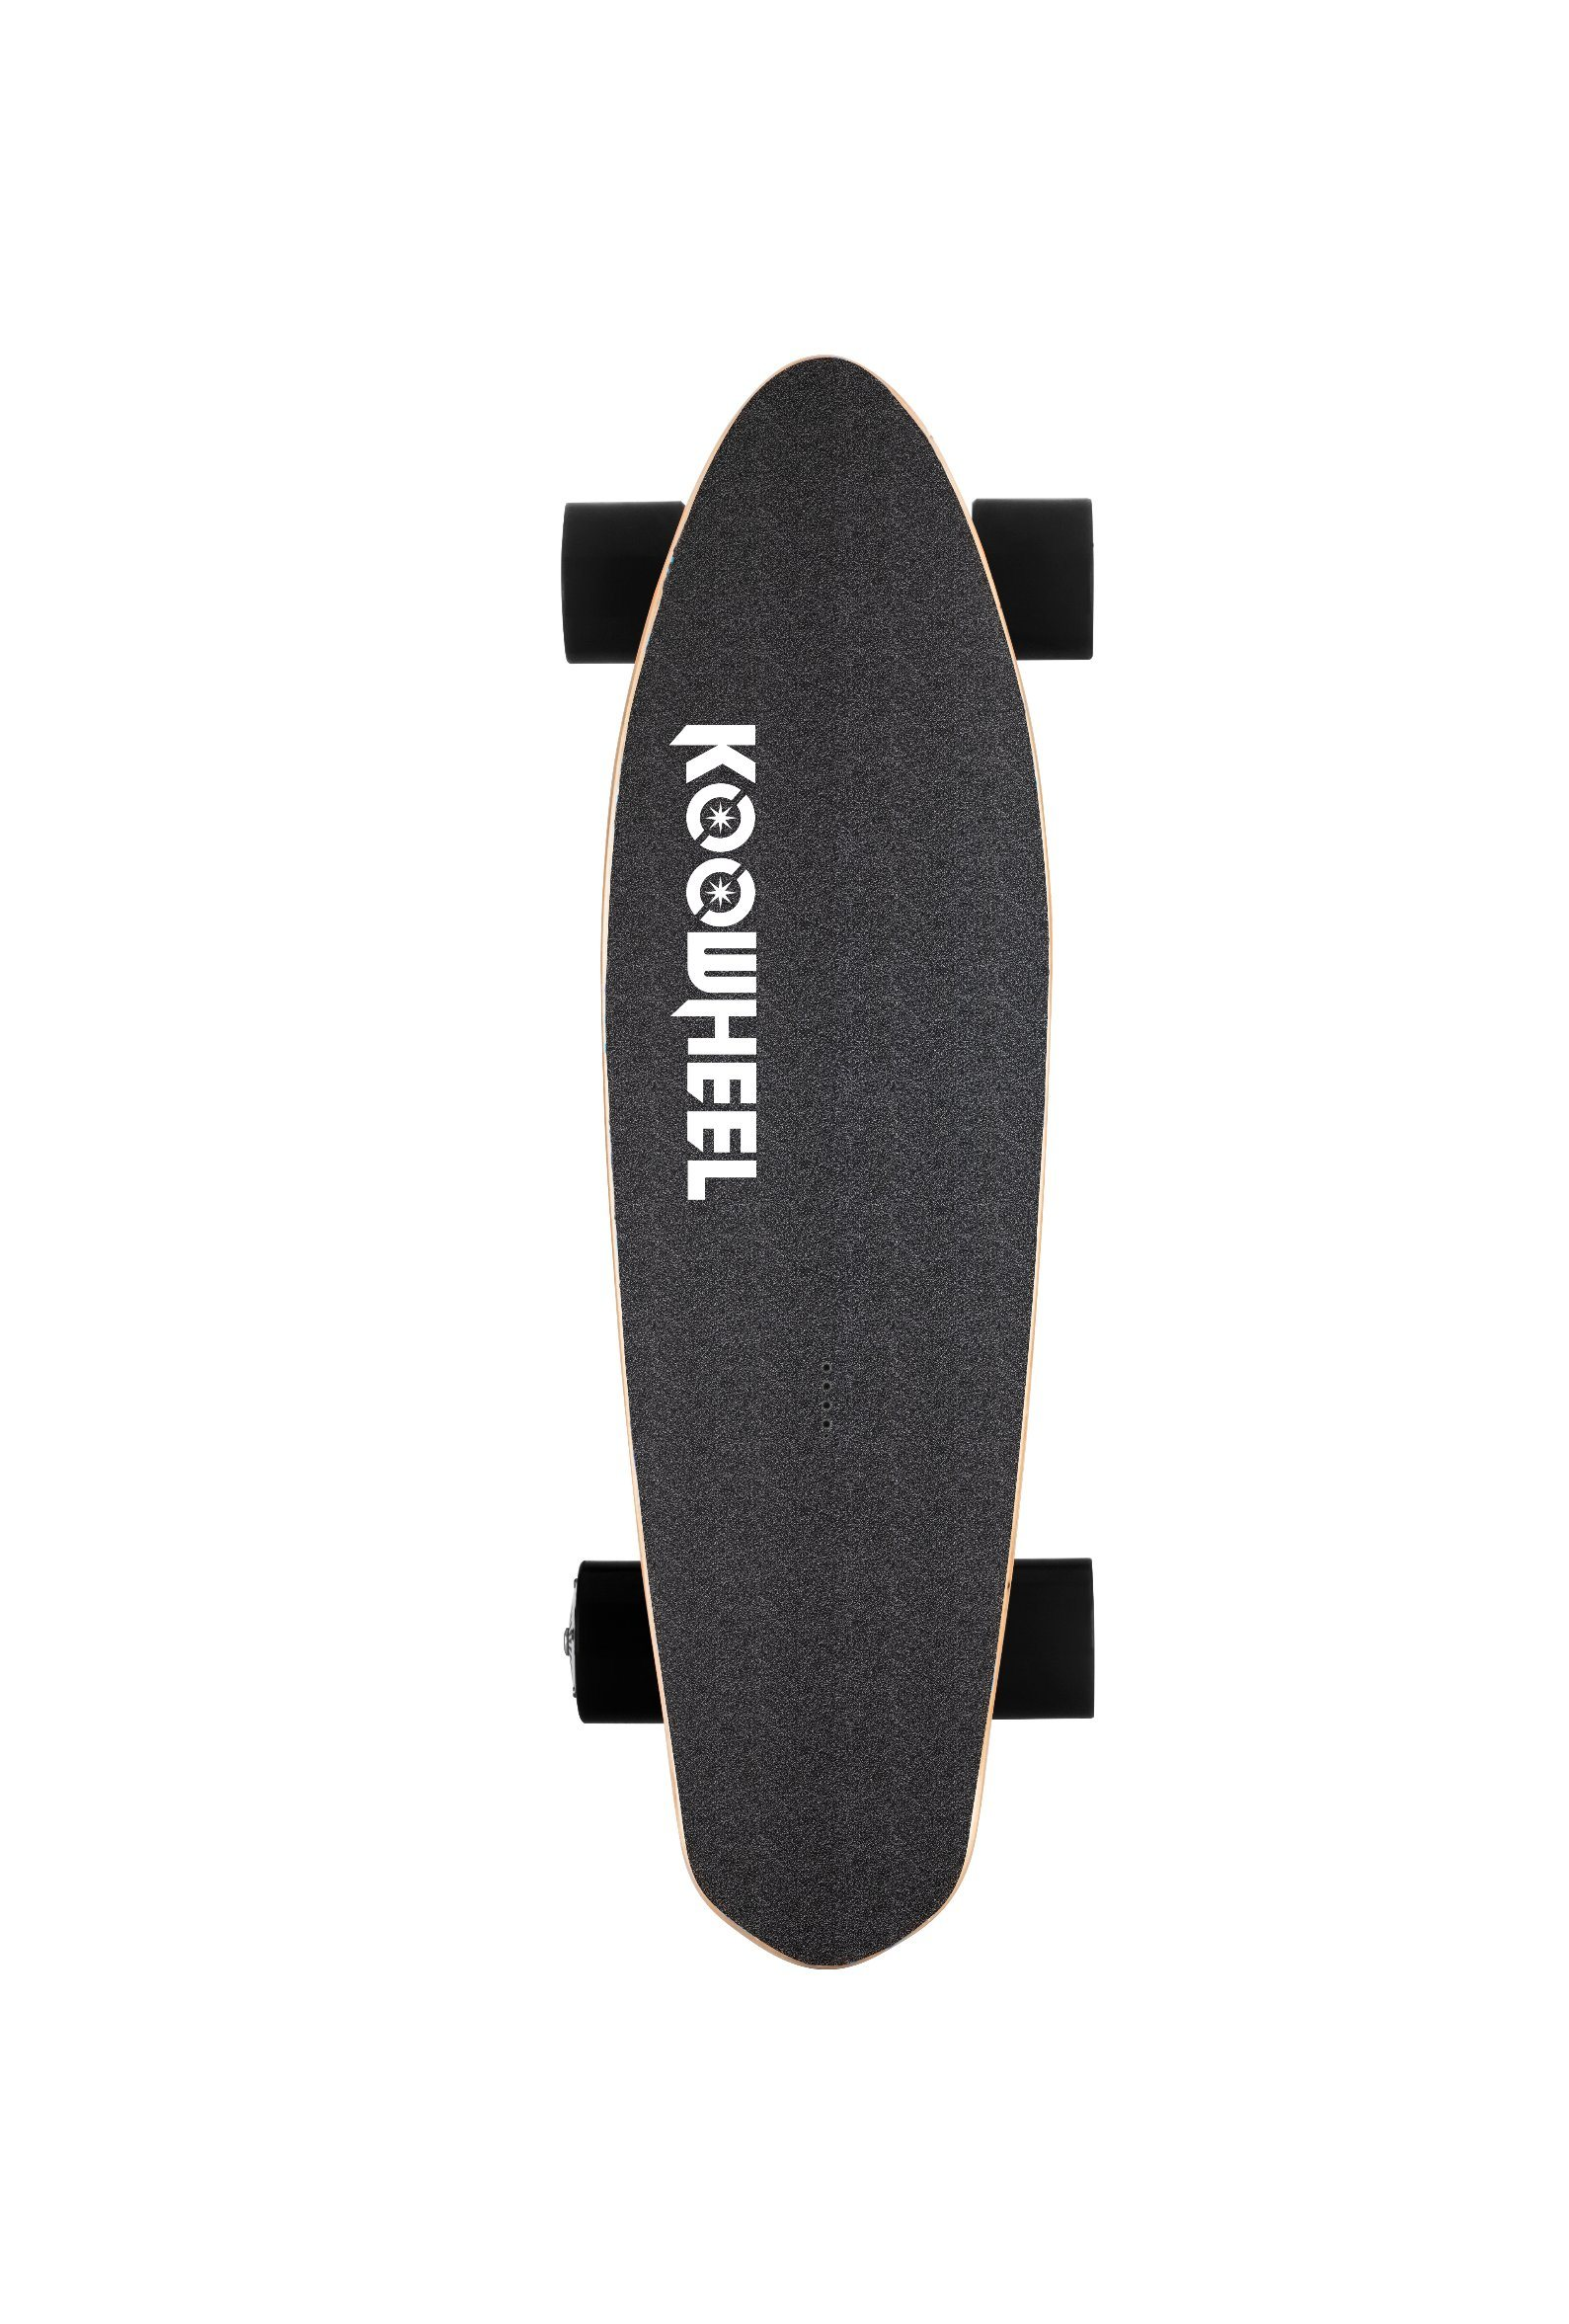 [Hot Item] Kooboard Mini Board 28inch Canada Maple Skateboard